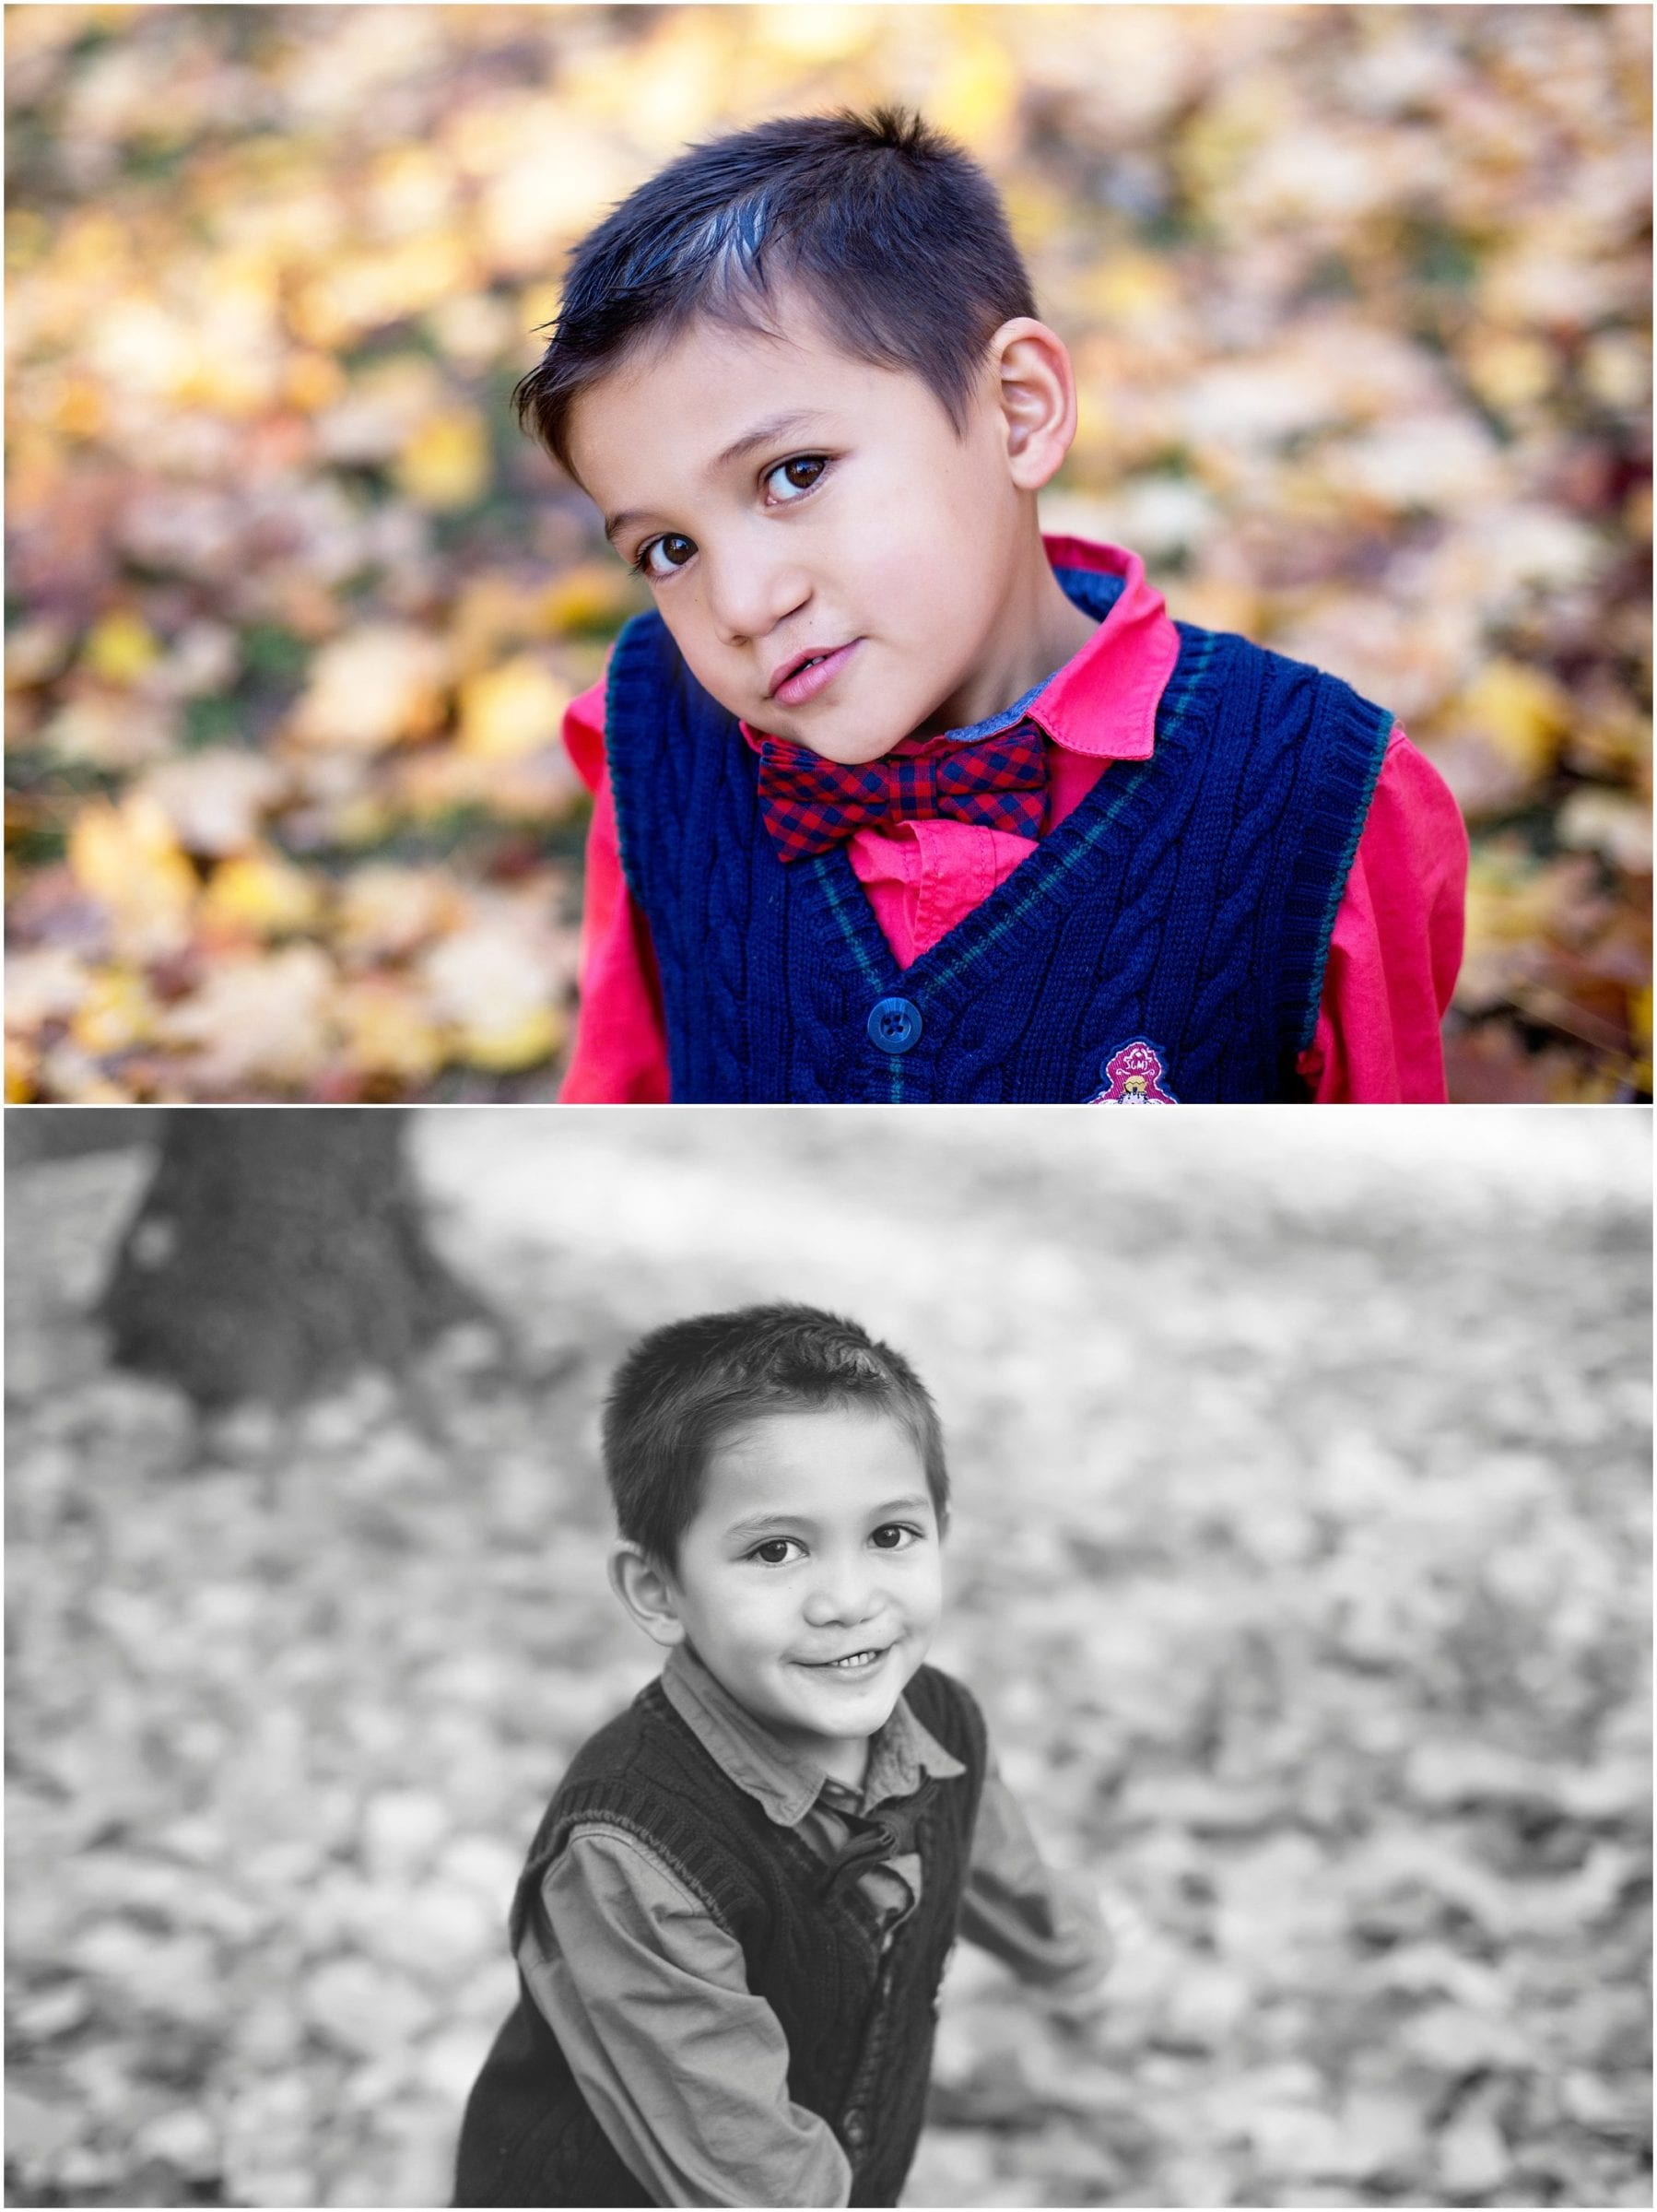 Strasbourg Family and Children Photographer, Helena Woods, France family Christmas Card photography session shares a recent session at Parc de l'Orangerie